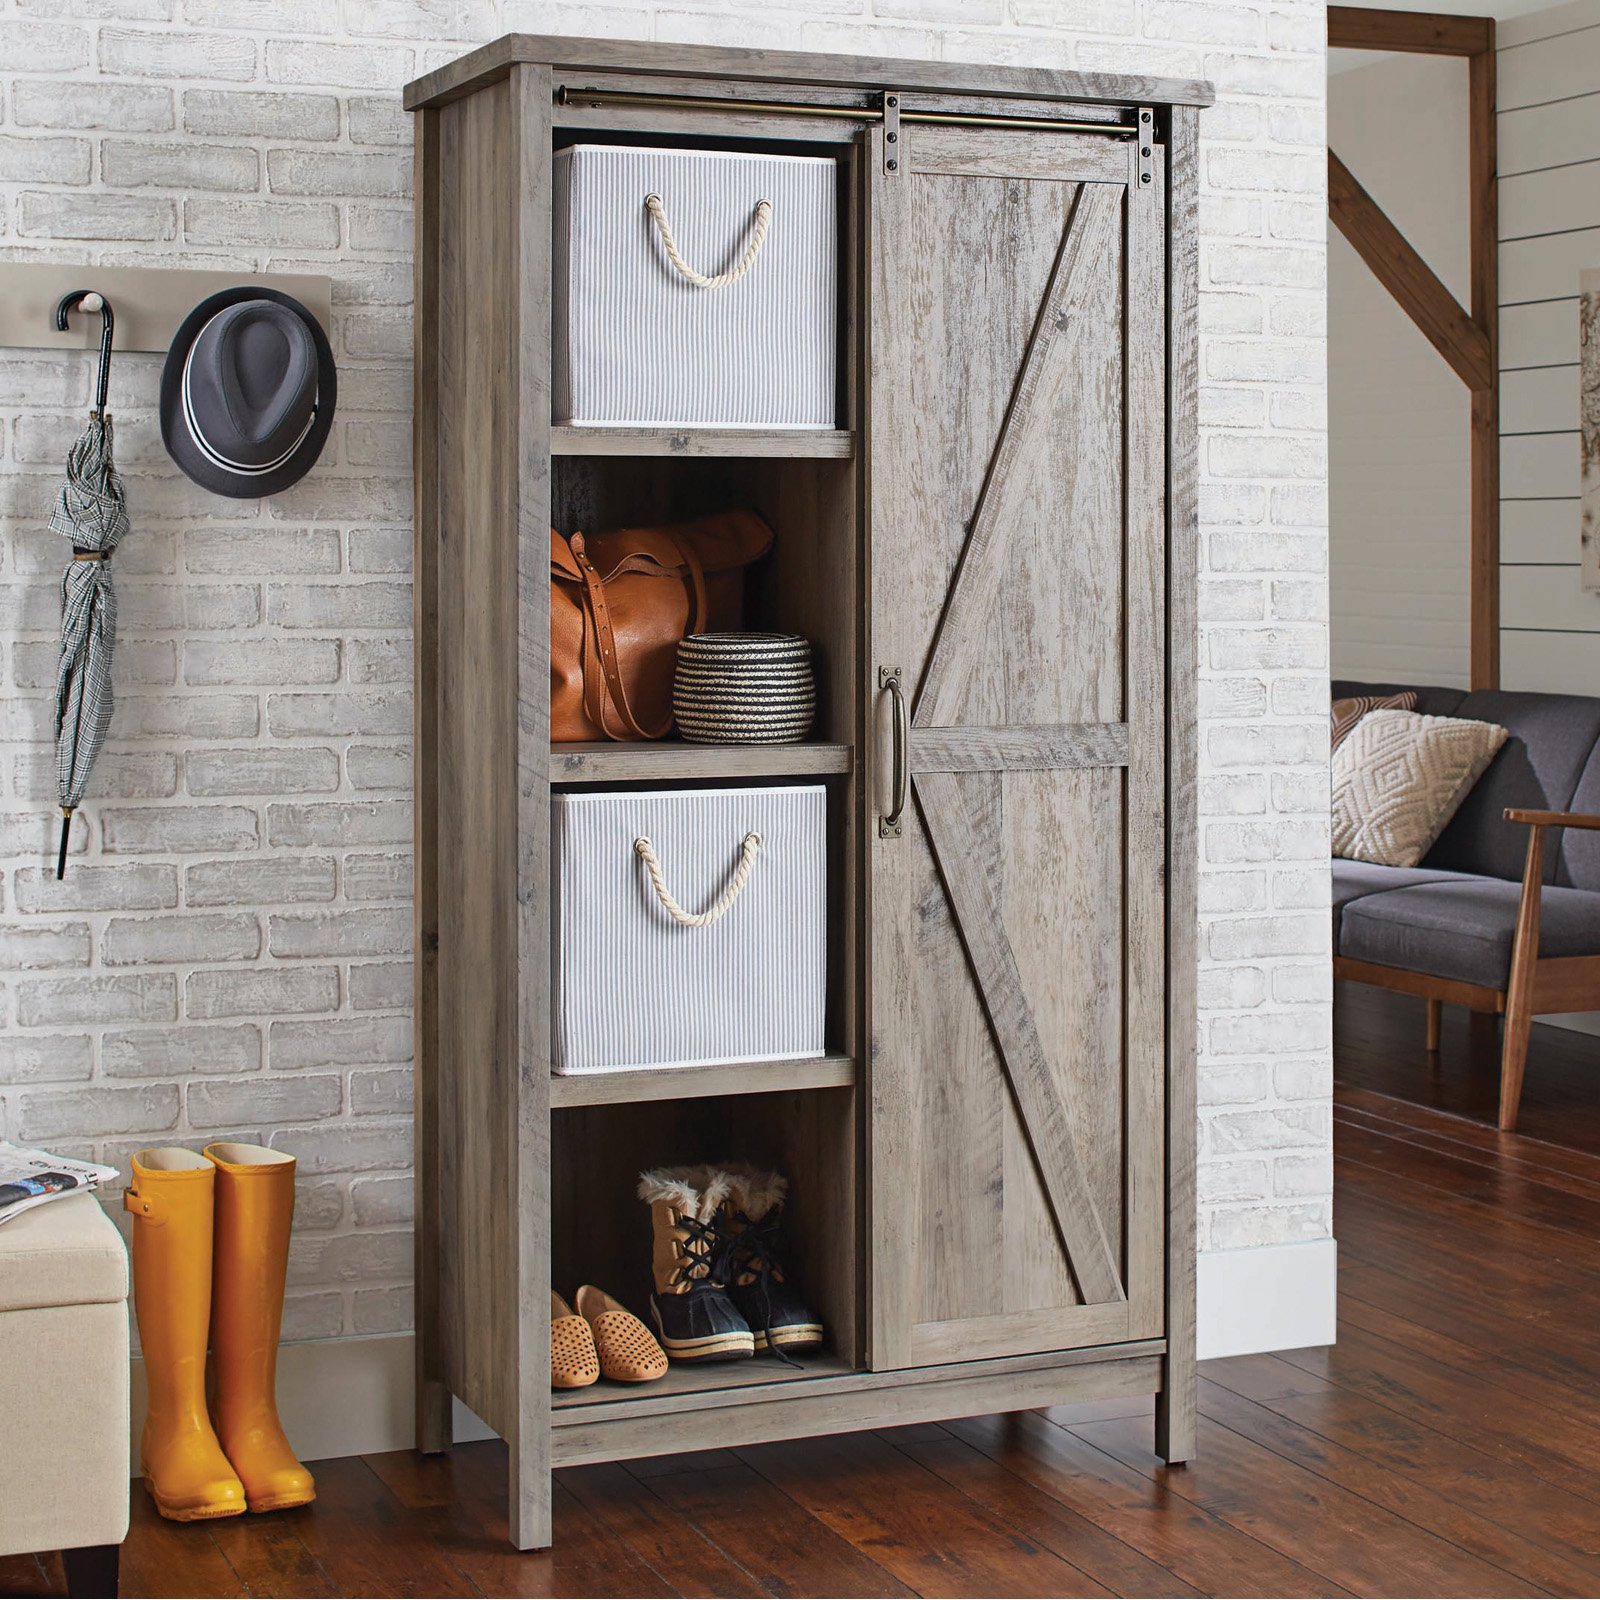 Perfect Better Homes And Gardens Modern Farmhouse Storage Cabinet, Rustic Gray  Finish Image 2 Of 8